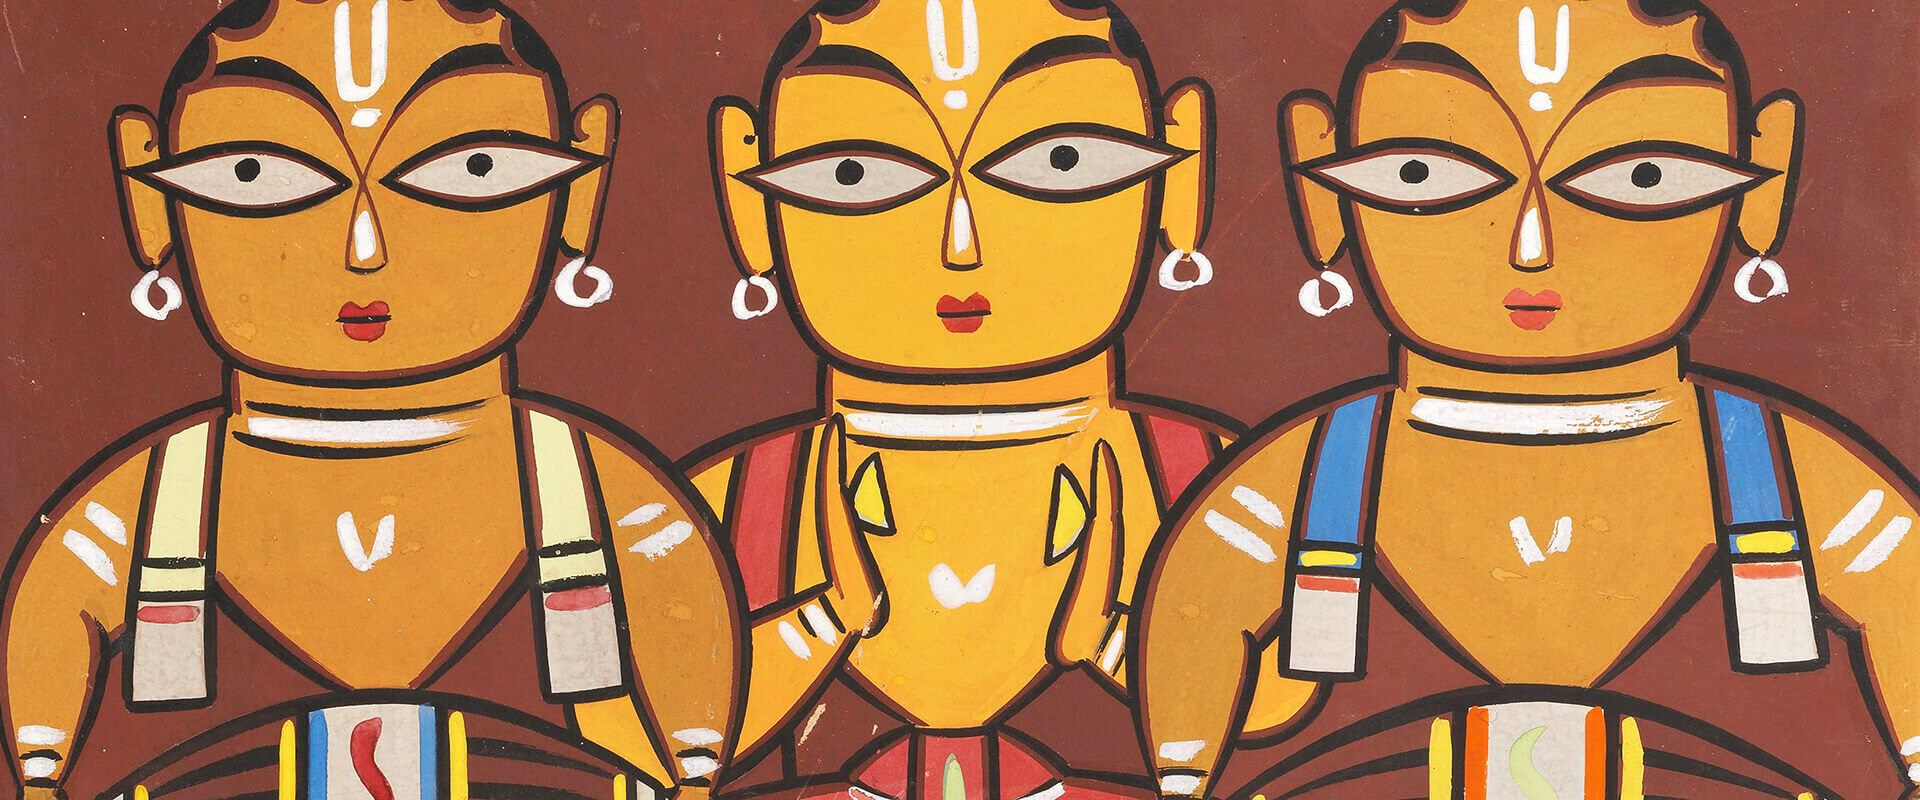 Jamini Roy Paintings | Buy Posters, Frames, Canvas, Digital Art & Large Size Prints Of The Famous Old Master's Artworks